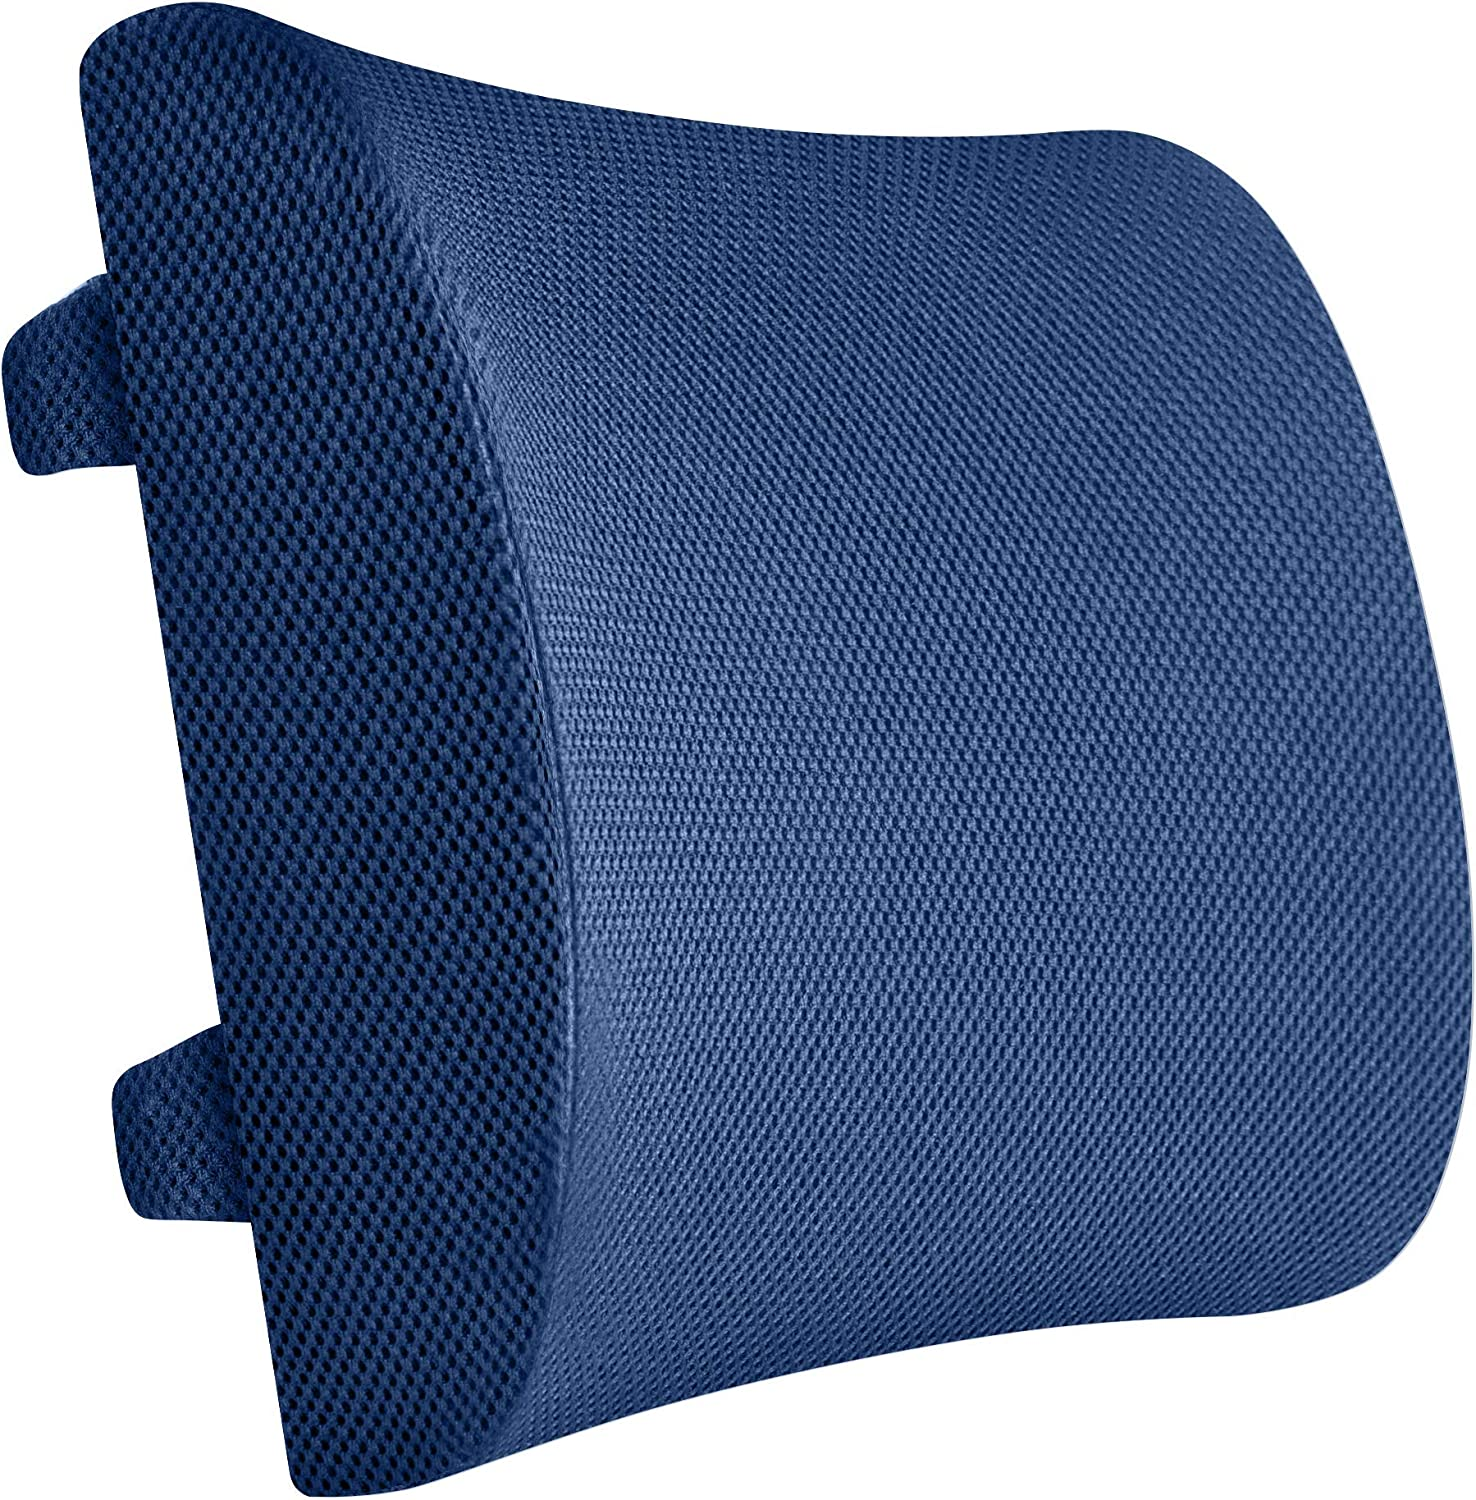 Everlasting Comfort 100% Pure Memory Foam Back Cushion - Lumbar Support Back Pillow - Fits Car Seat and Office Chair - Lower Back Pain Relief (Navy Blue)